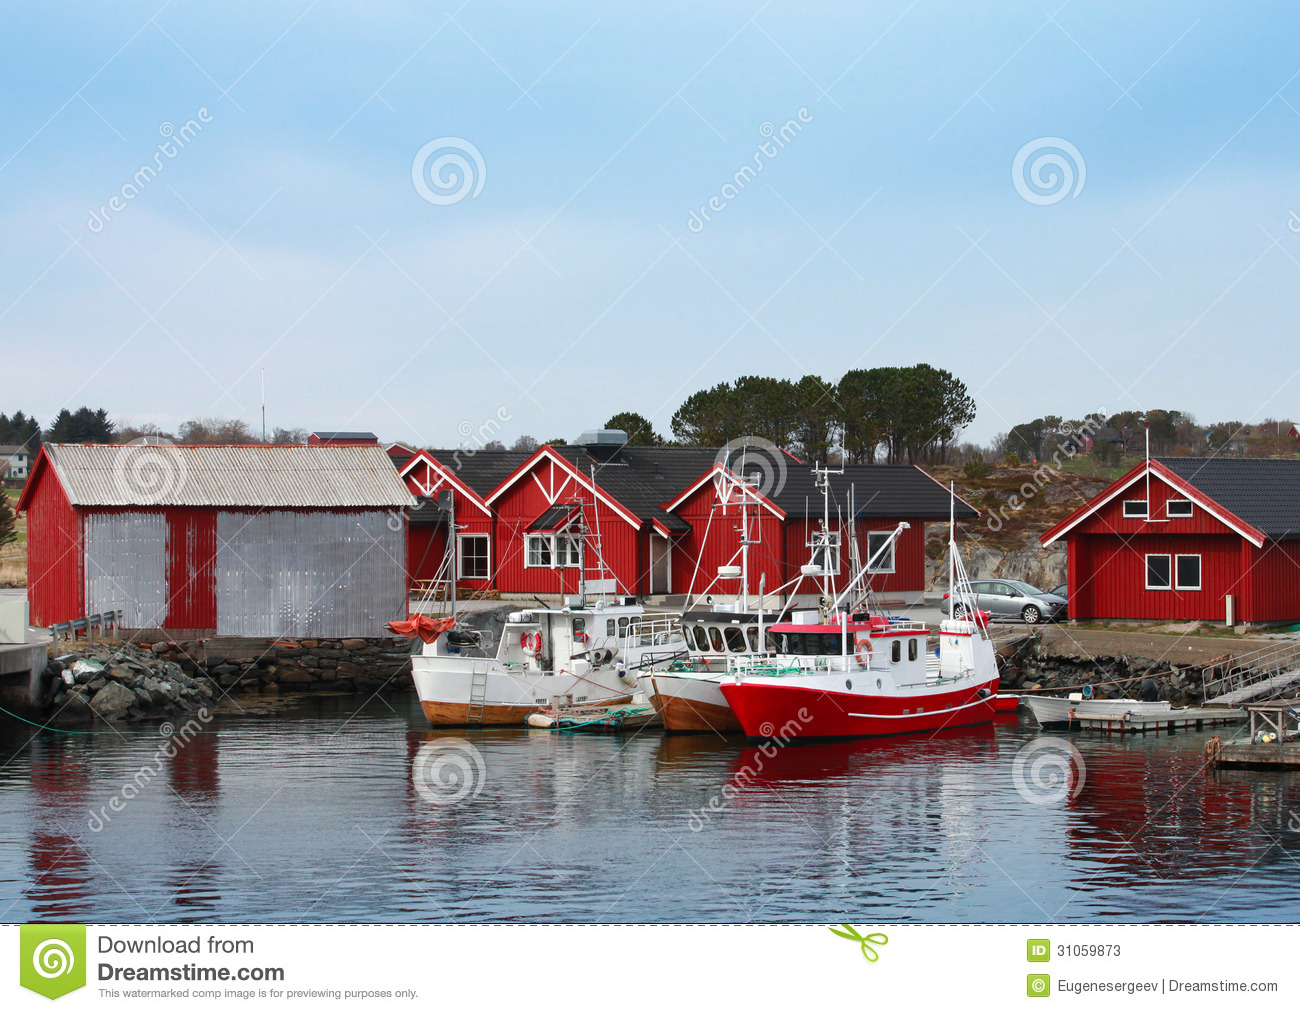 Norwegian Fishing Village With Red Wooden Houses Stock Image - Image: 31059873